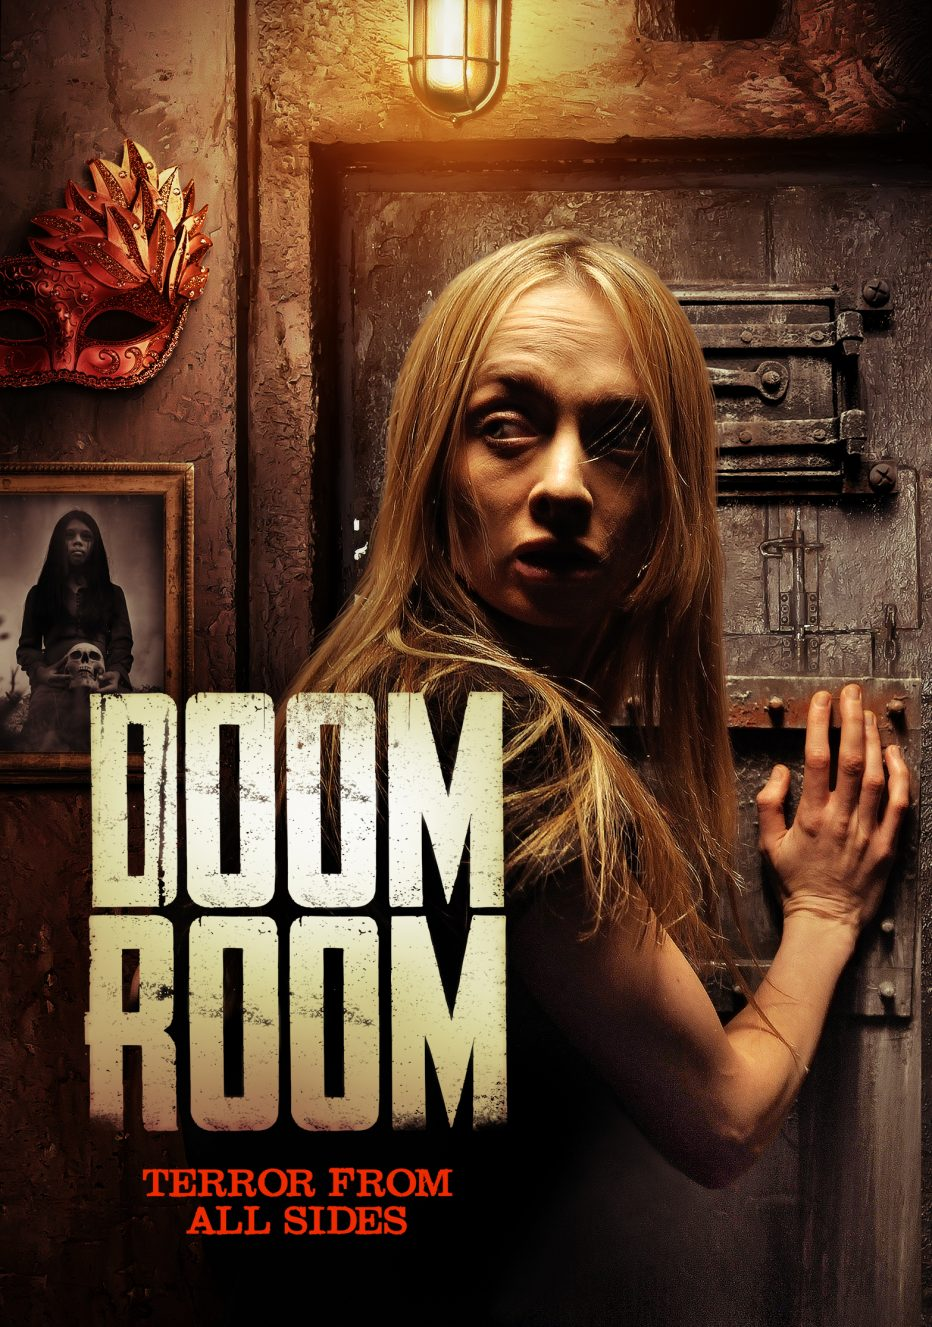 Official Trailer for DOOM ROOM starring Debbie Rochon On VOD January 15